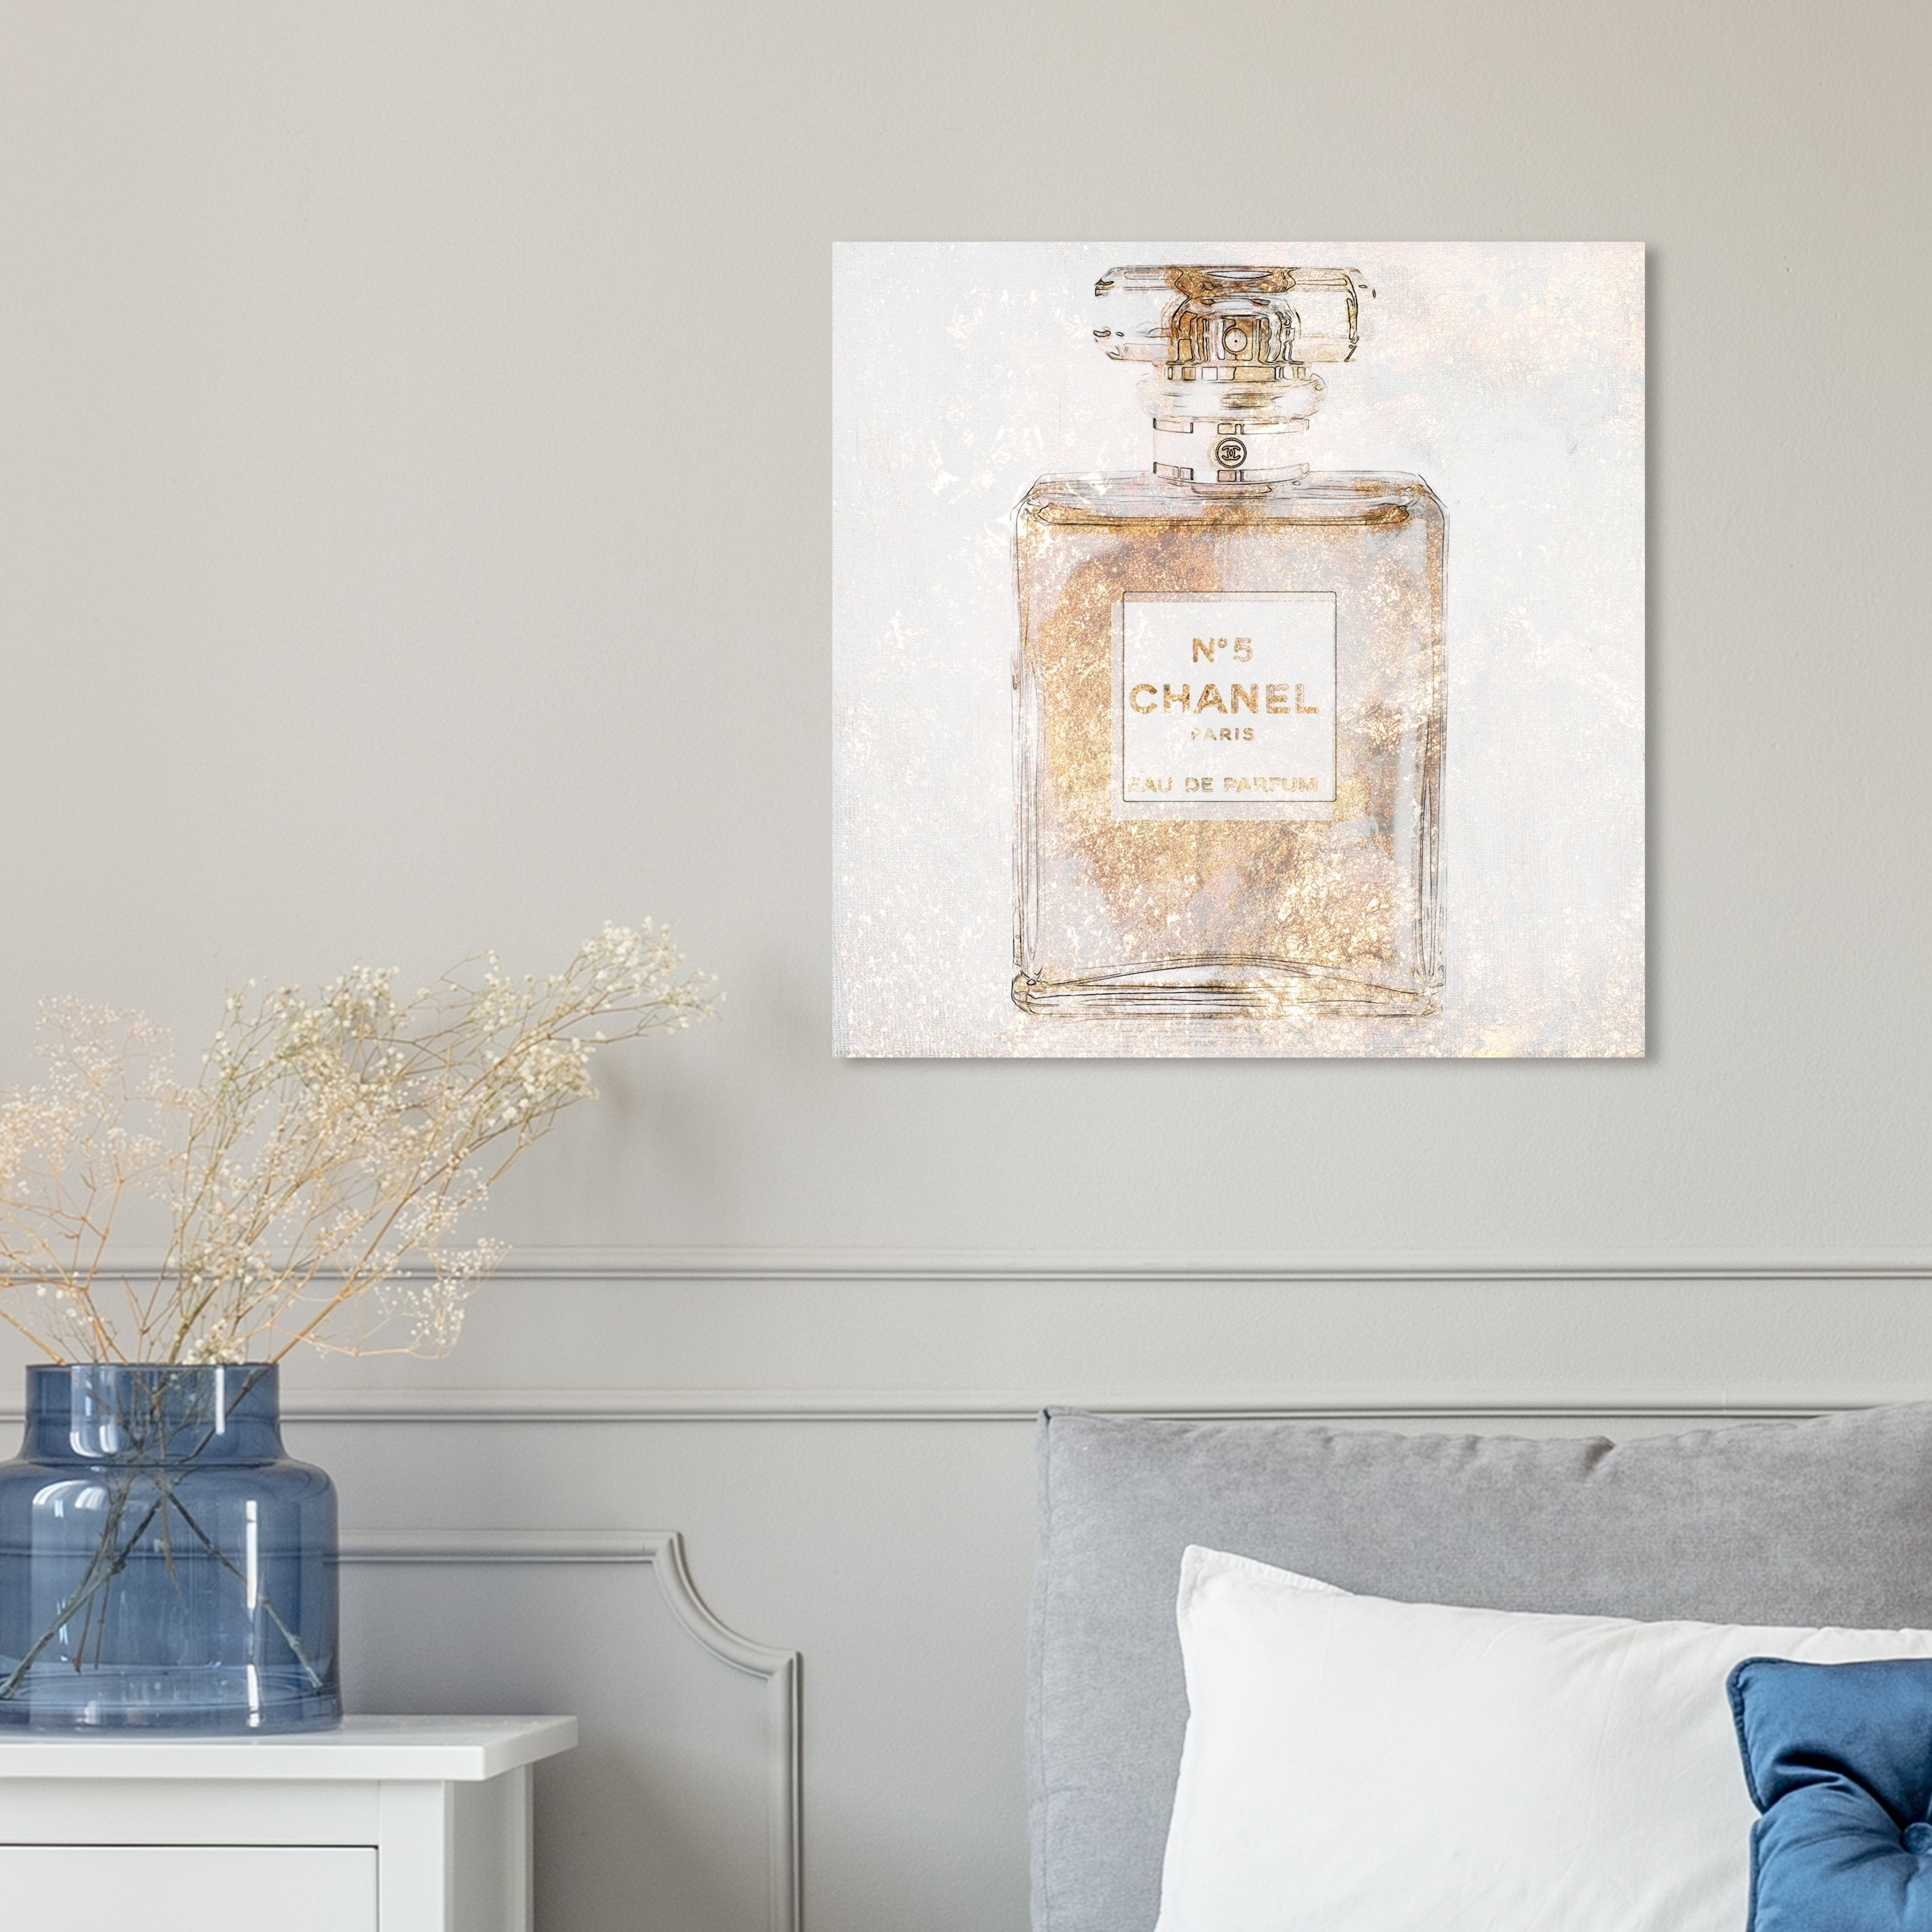 Oliver Gal Parfum Glimmer Fashion And Glam Wall Art Canvas Print Gold White On Sale Overstock 28370135